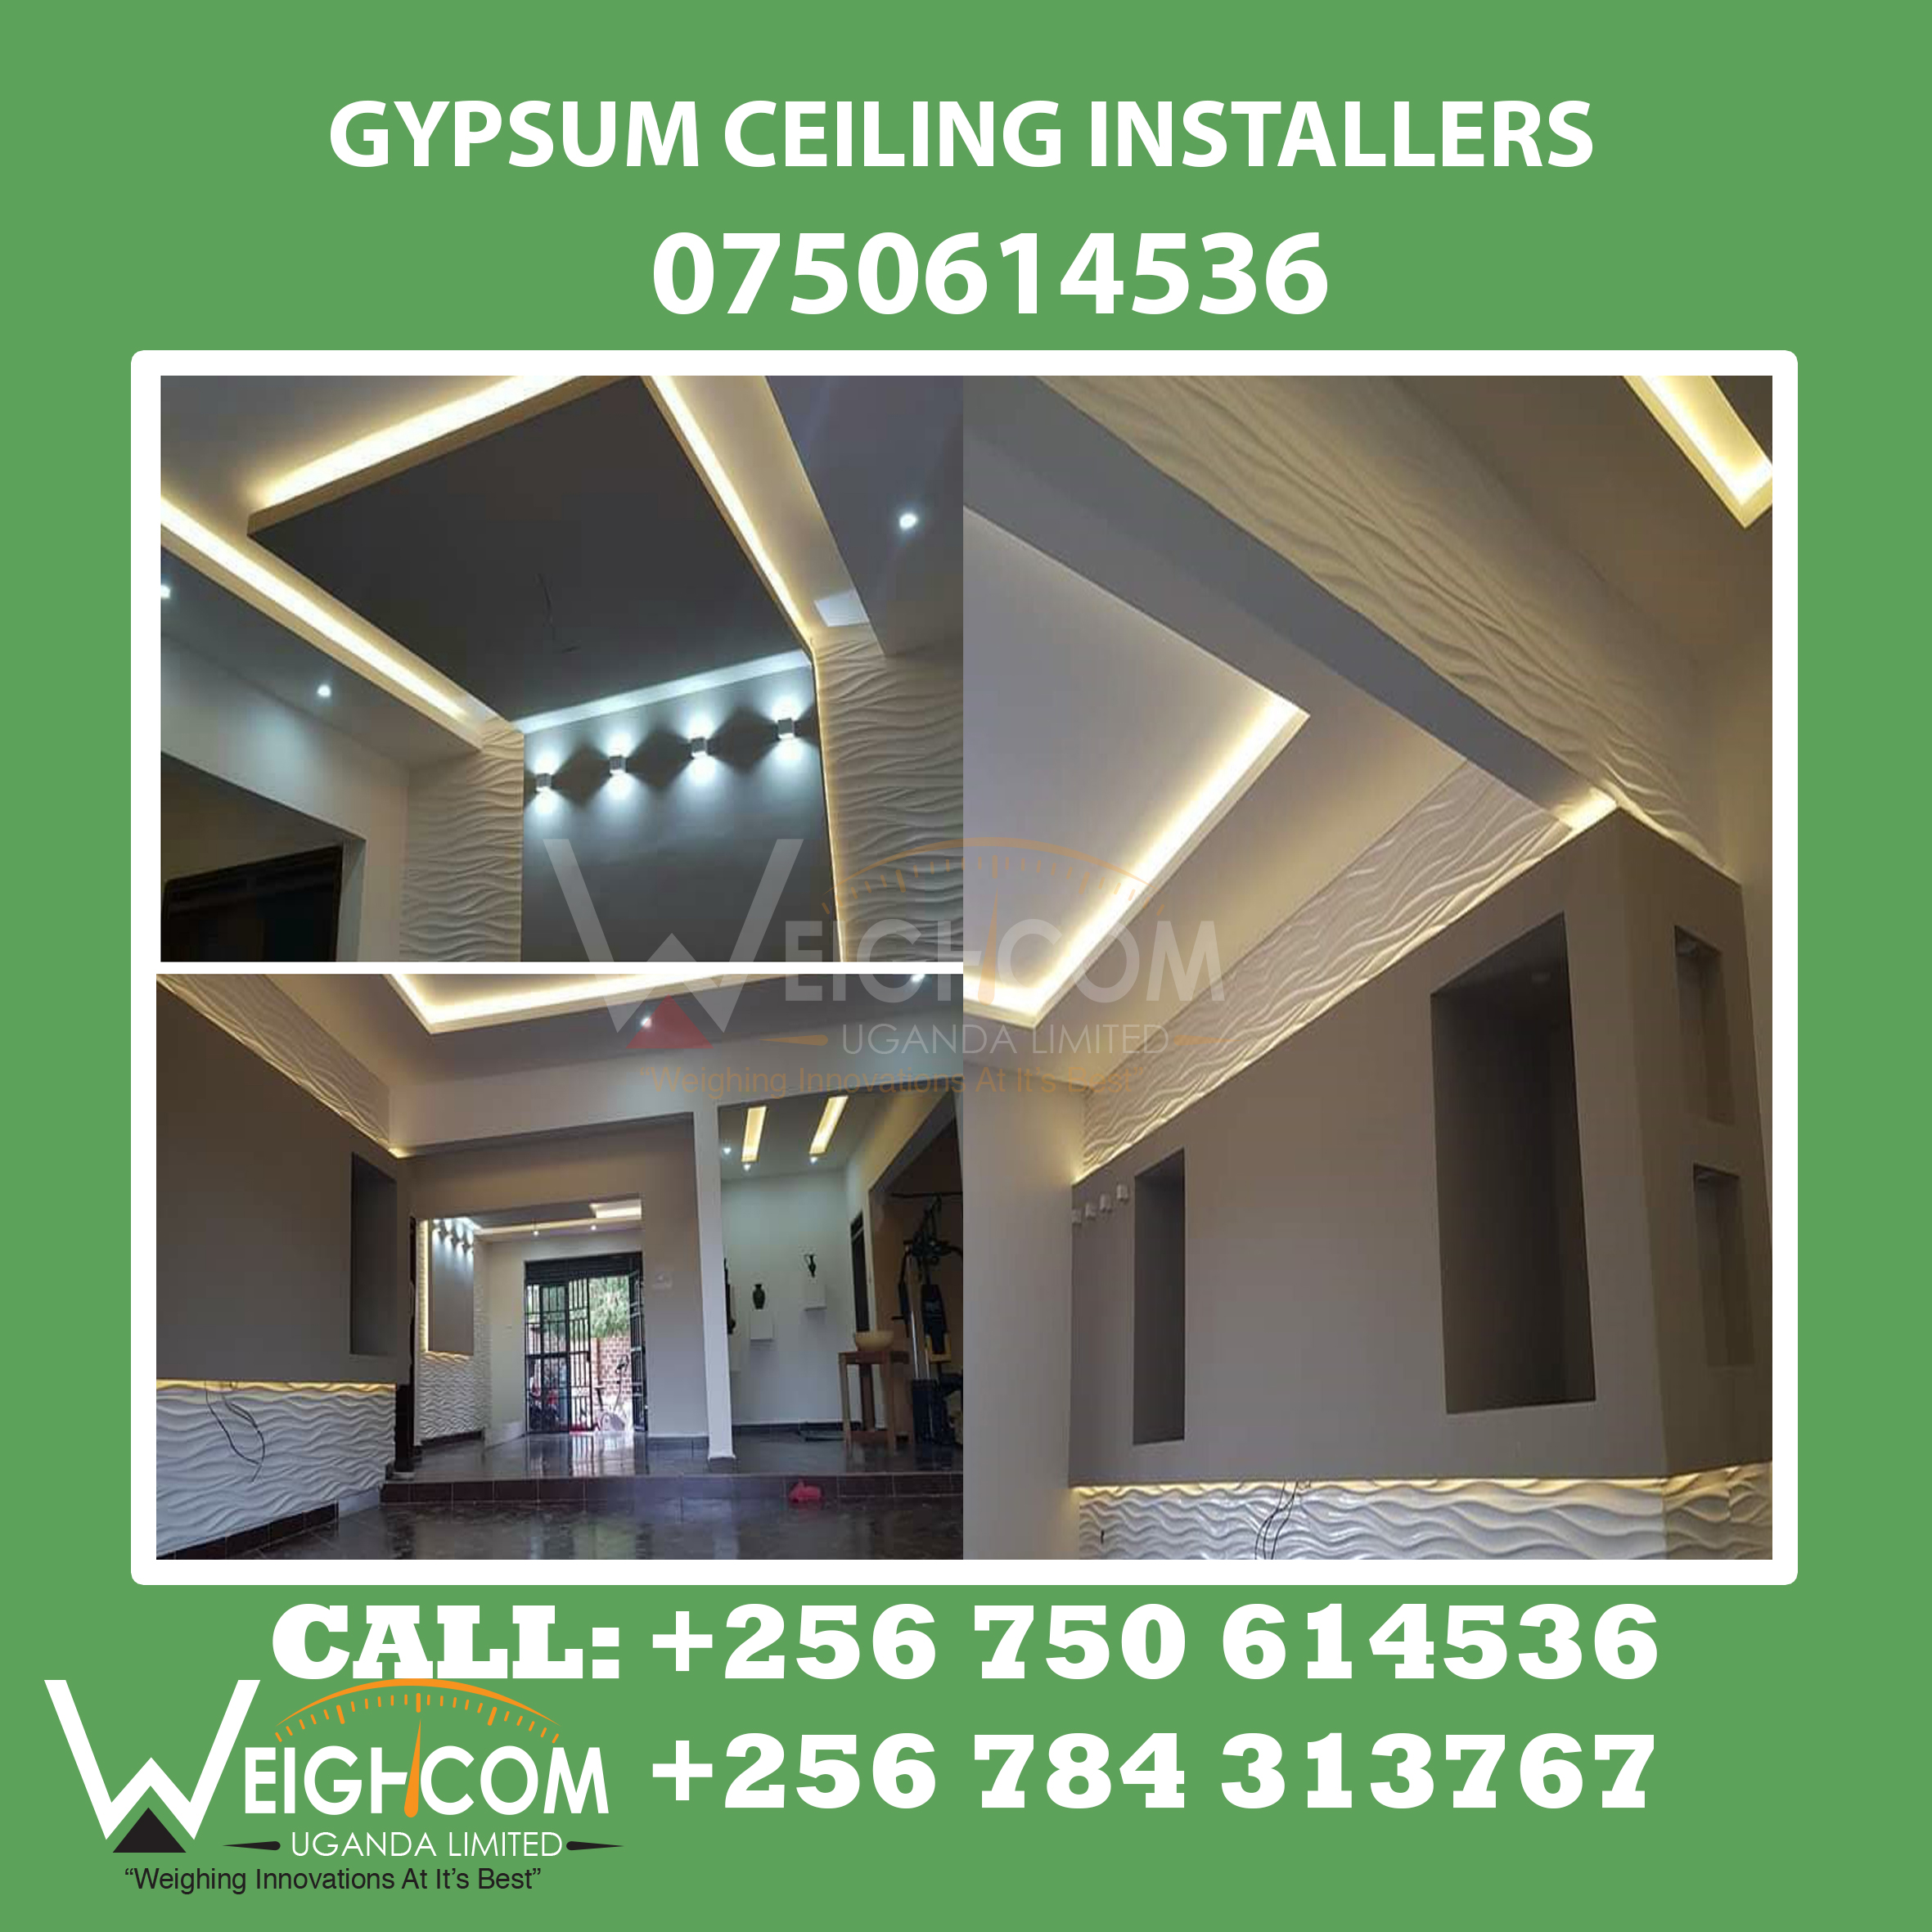 who designs gypsum ceilings in Kampala? we are here.